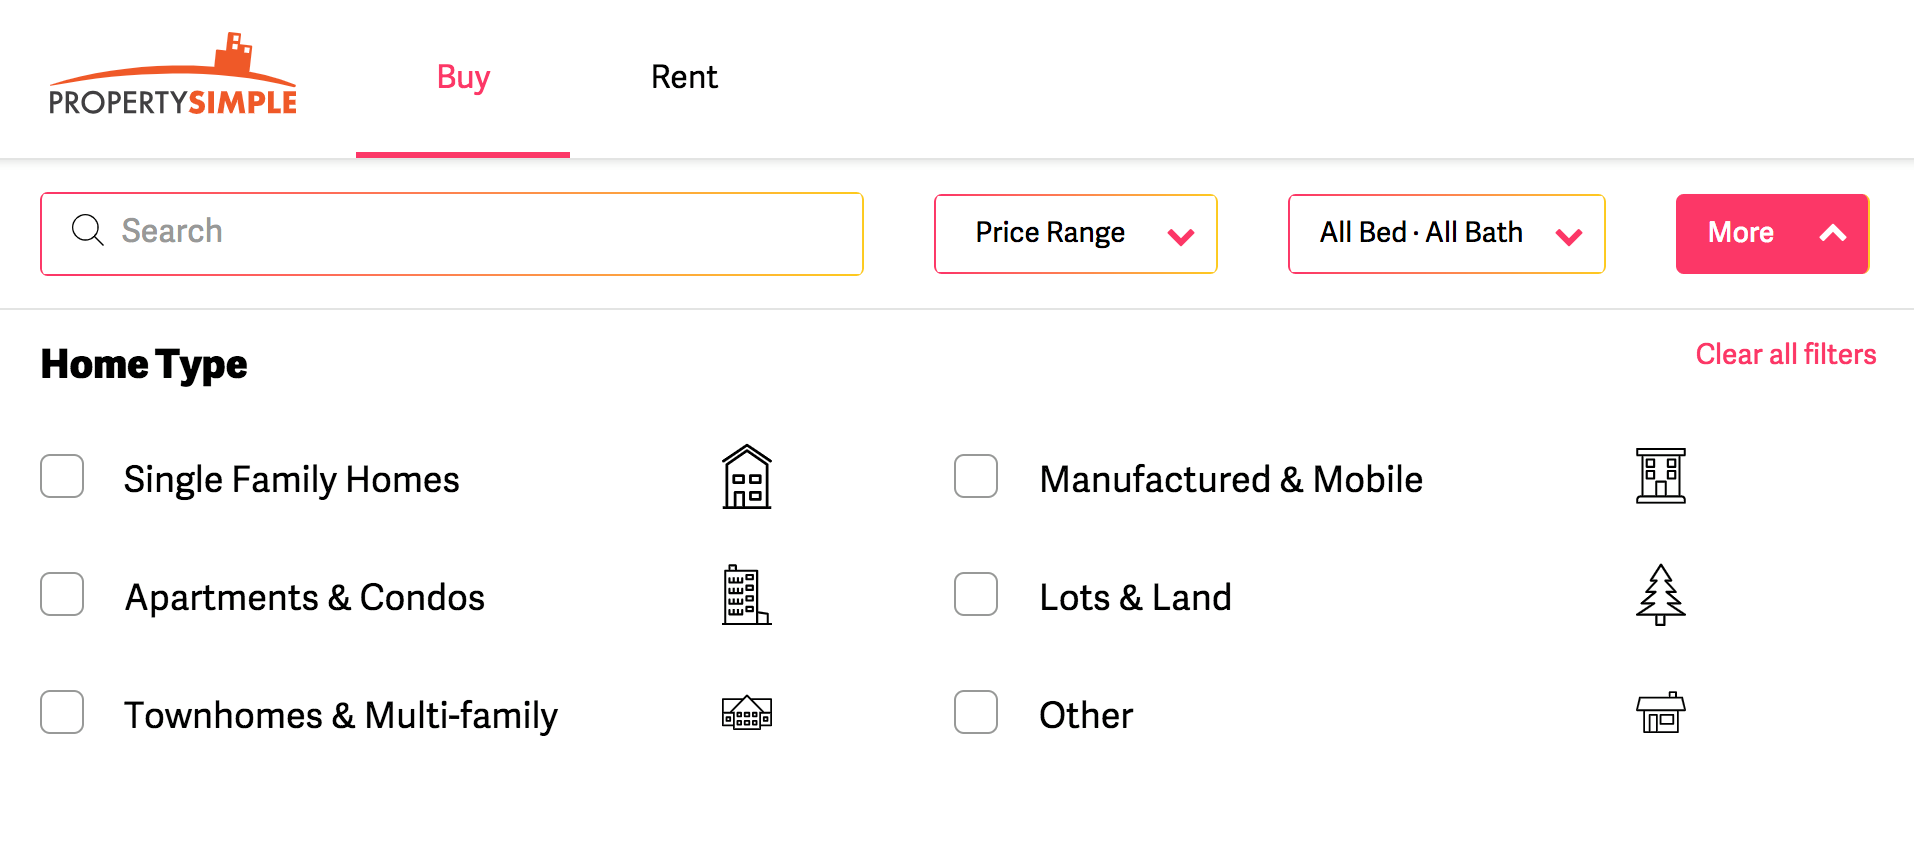 Filter options on the PropertySimple property portal